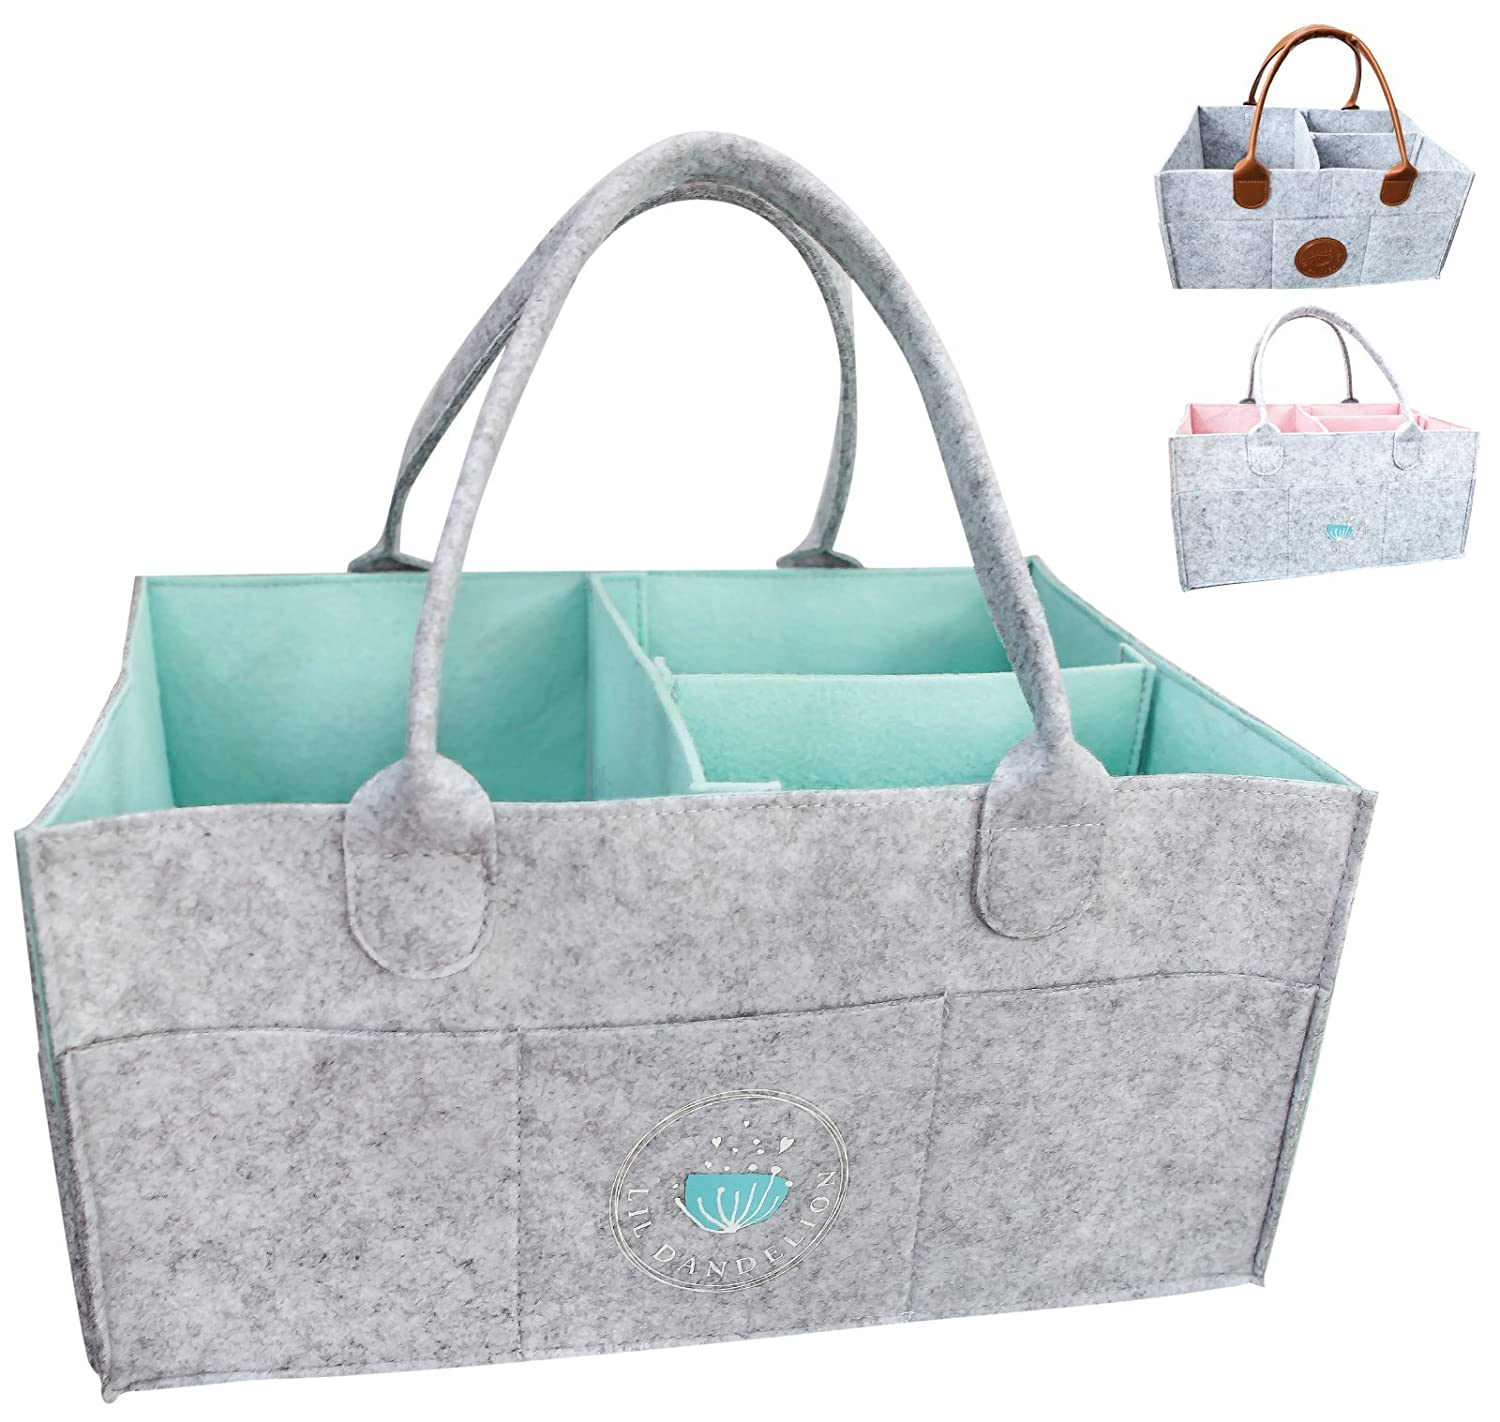 Baby Diaper Caddy Organizer - Baby Shower Gift Basket for Boys Girls | Diaper Tote Bag | Nursery Storage Bin for Changing Table | Newborn Registry Must Haves | Portable Car Travel Organizer (Blue) Lil Dandelion